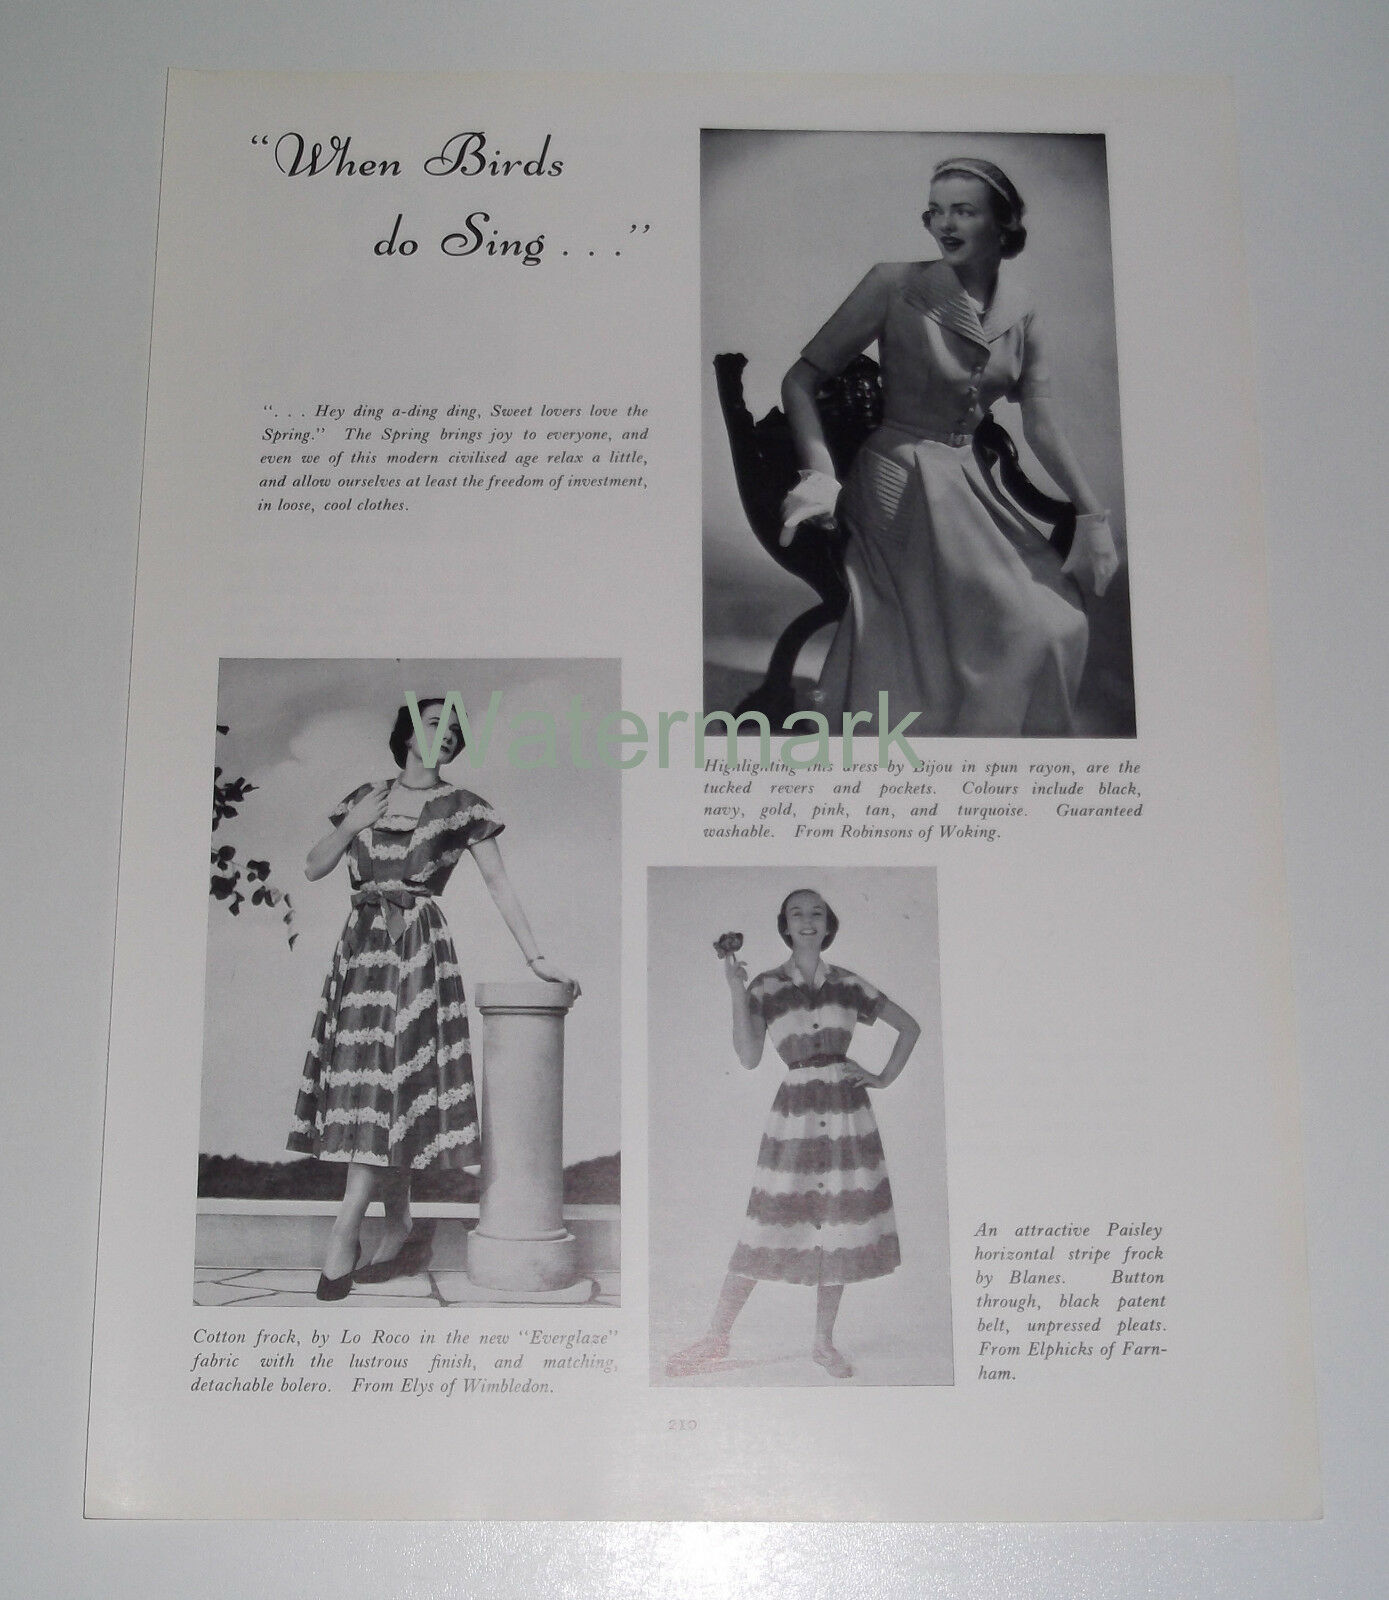 fifties time fashion vintage 1951 article 163 8 00